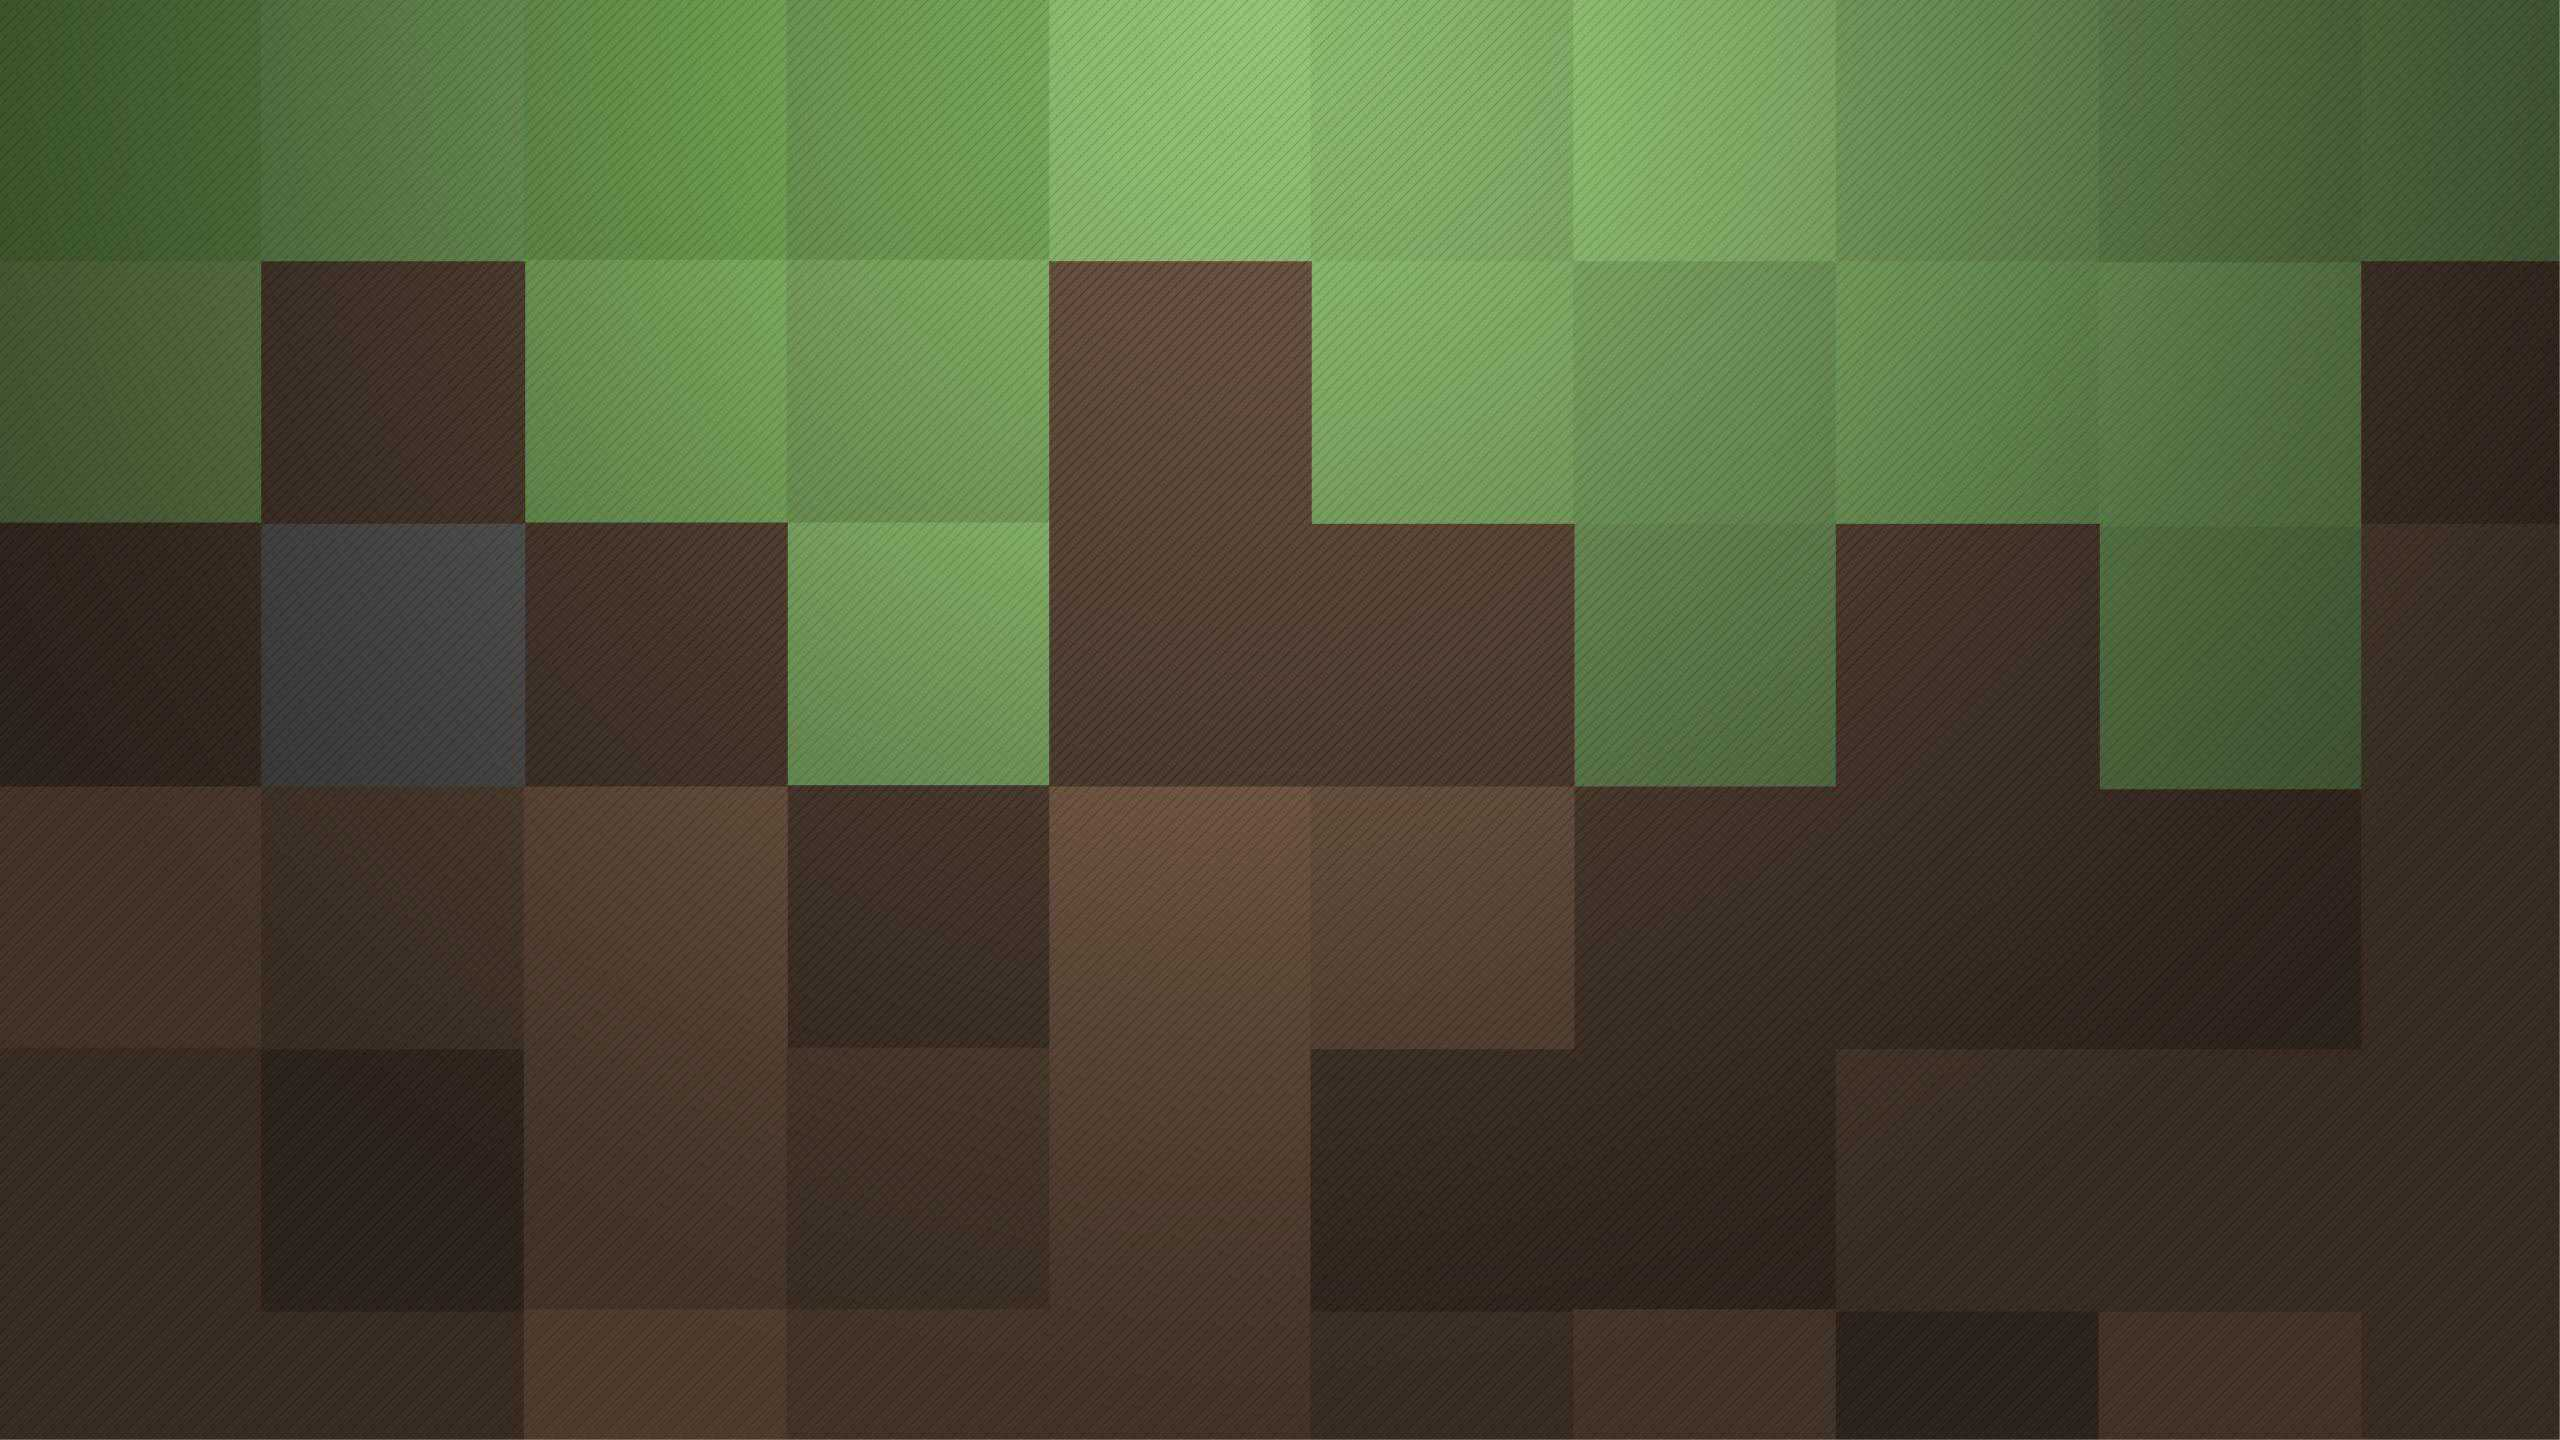 Simple Wallpaper Minecraft Pattern - minecraft-blocks-wqhd-1440p-wallpaper  You Should Have_305429.jpg